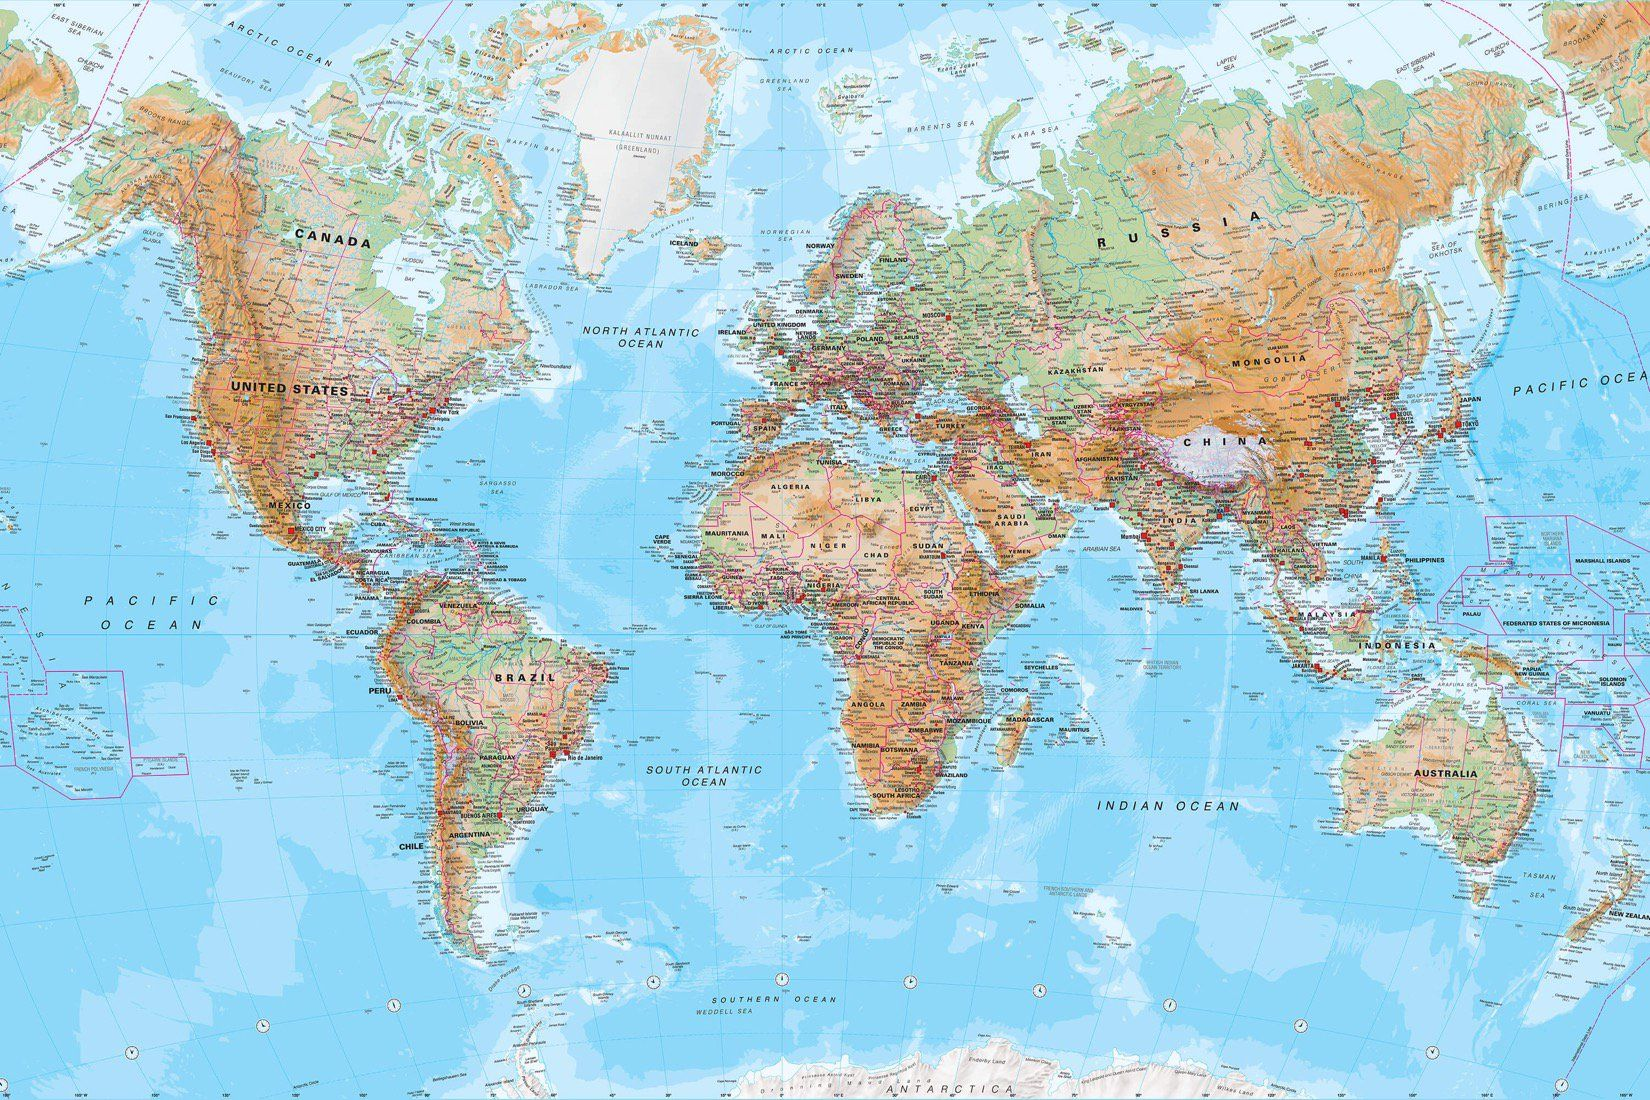 Physical world map mural wallpaper design services wall murals physical world map wall mural custom made to suit your wall size by the uks for wall murals custom design service and express delivery available gumiabroncs Images